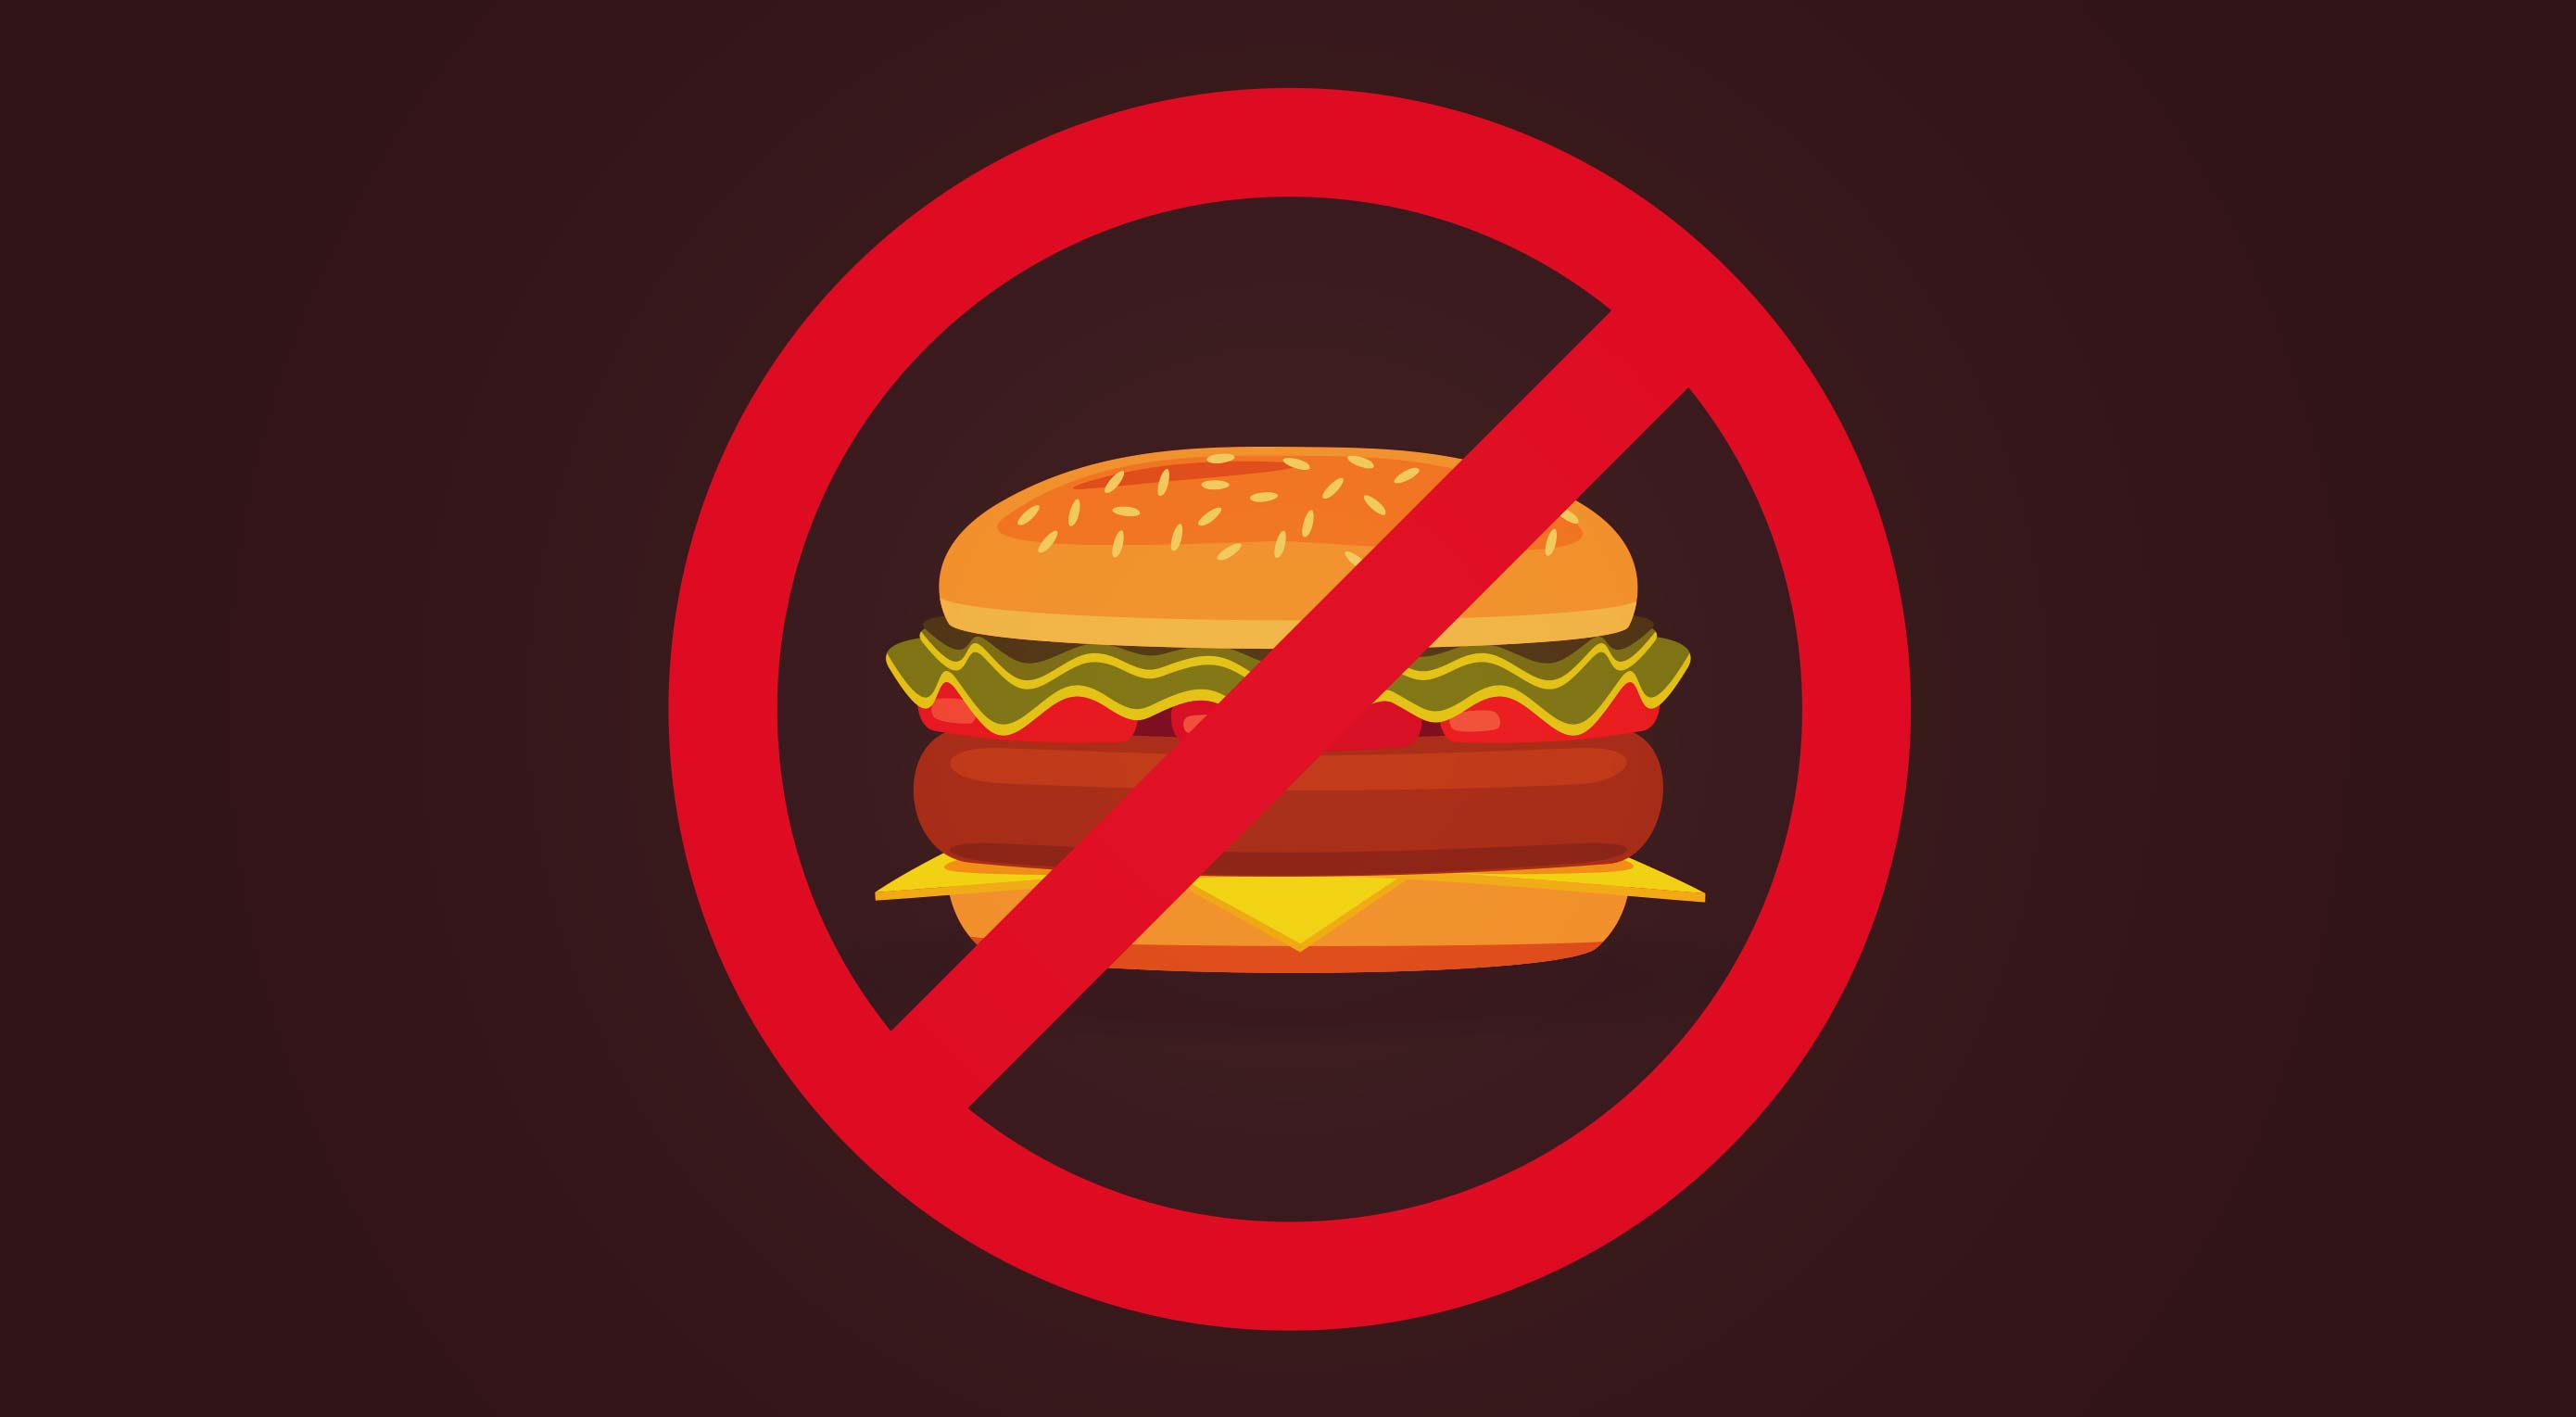 Why The Hamburger Menu Should Disappear For Good